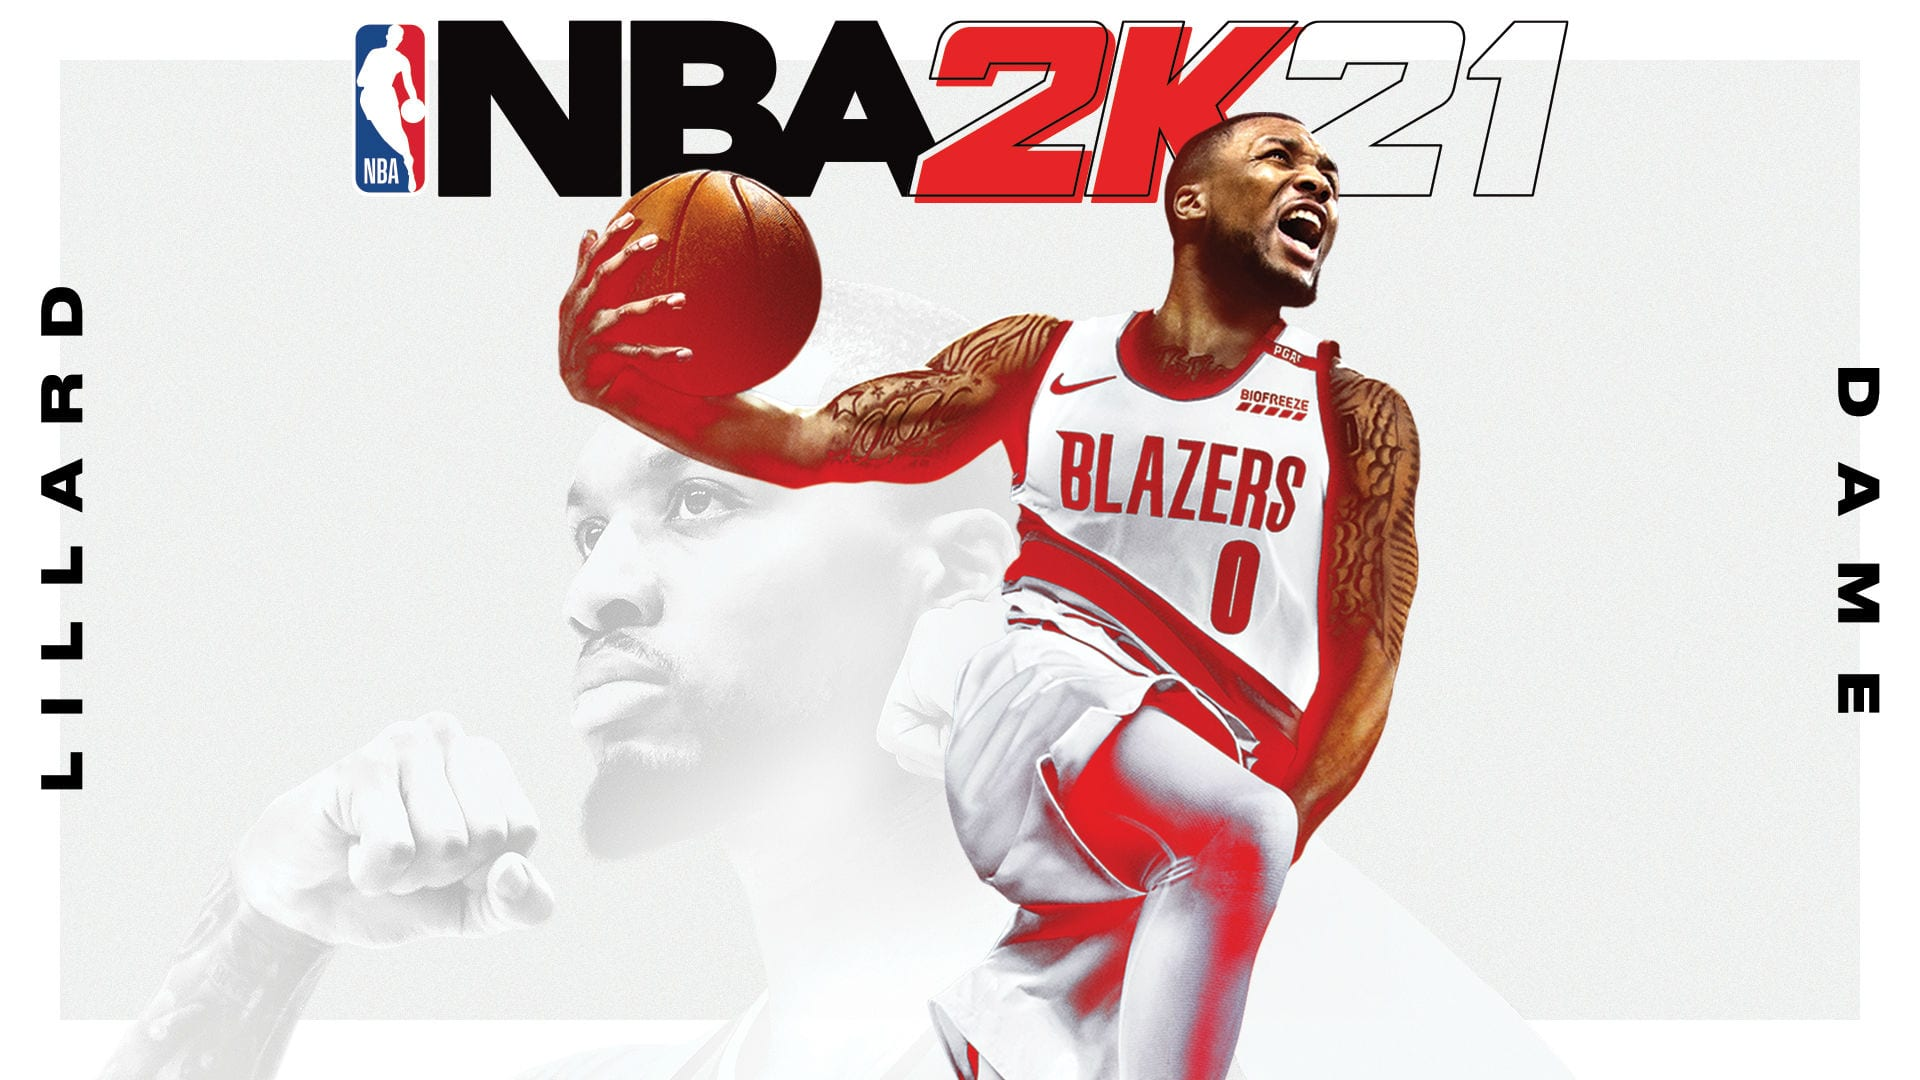 NBA 2K21 Creators Apologize for Unskippable Ads